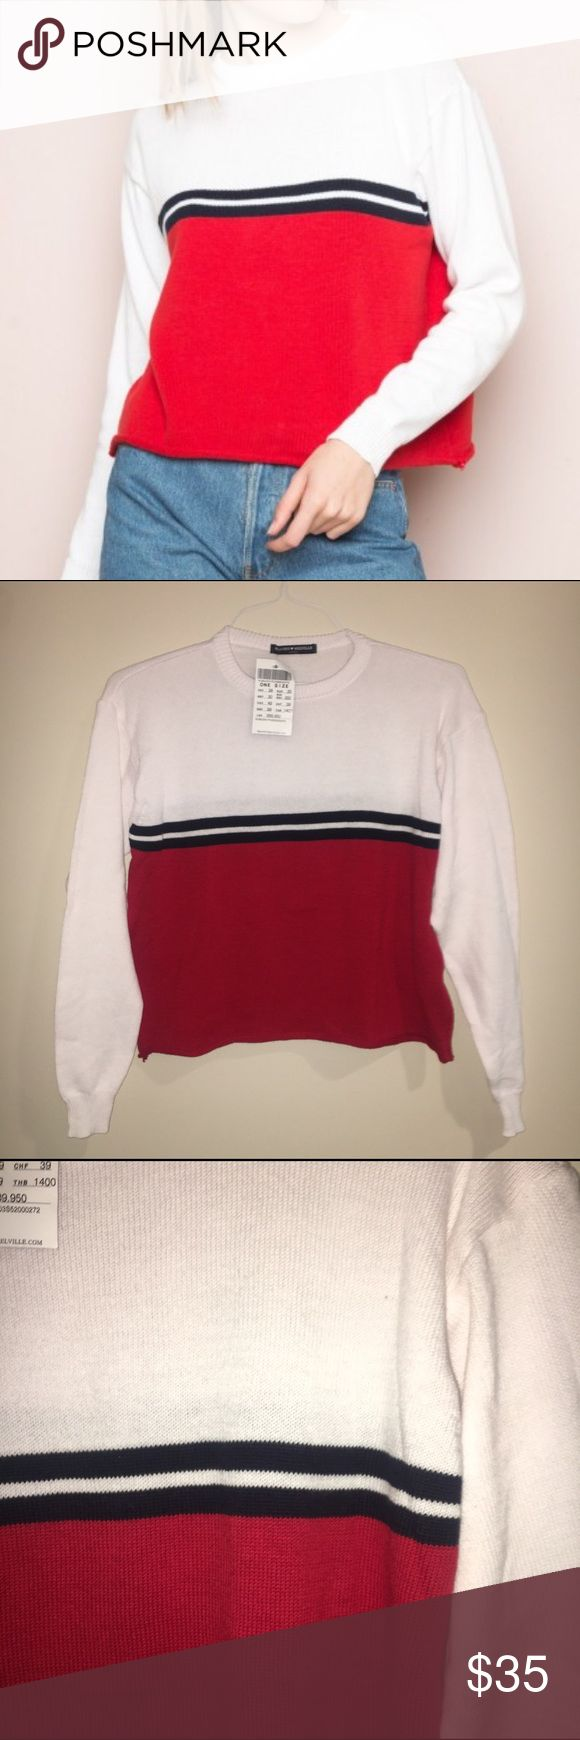 Brandy Melville sweater Never been worn!! Super cute one size fits most, this is super soft!! Brandy Melville Sweaters